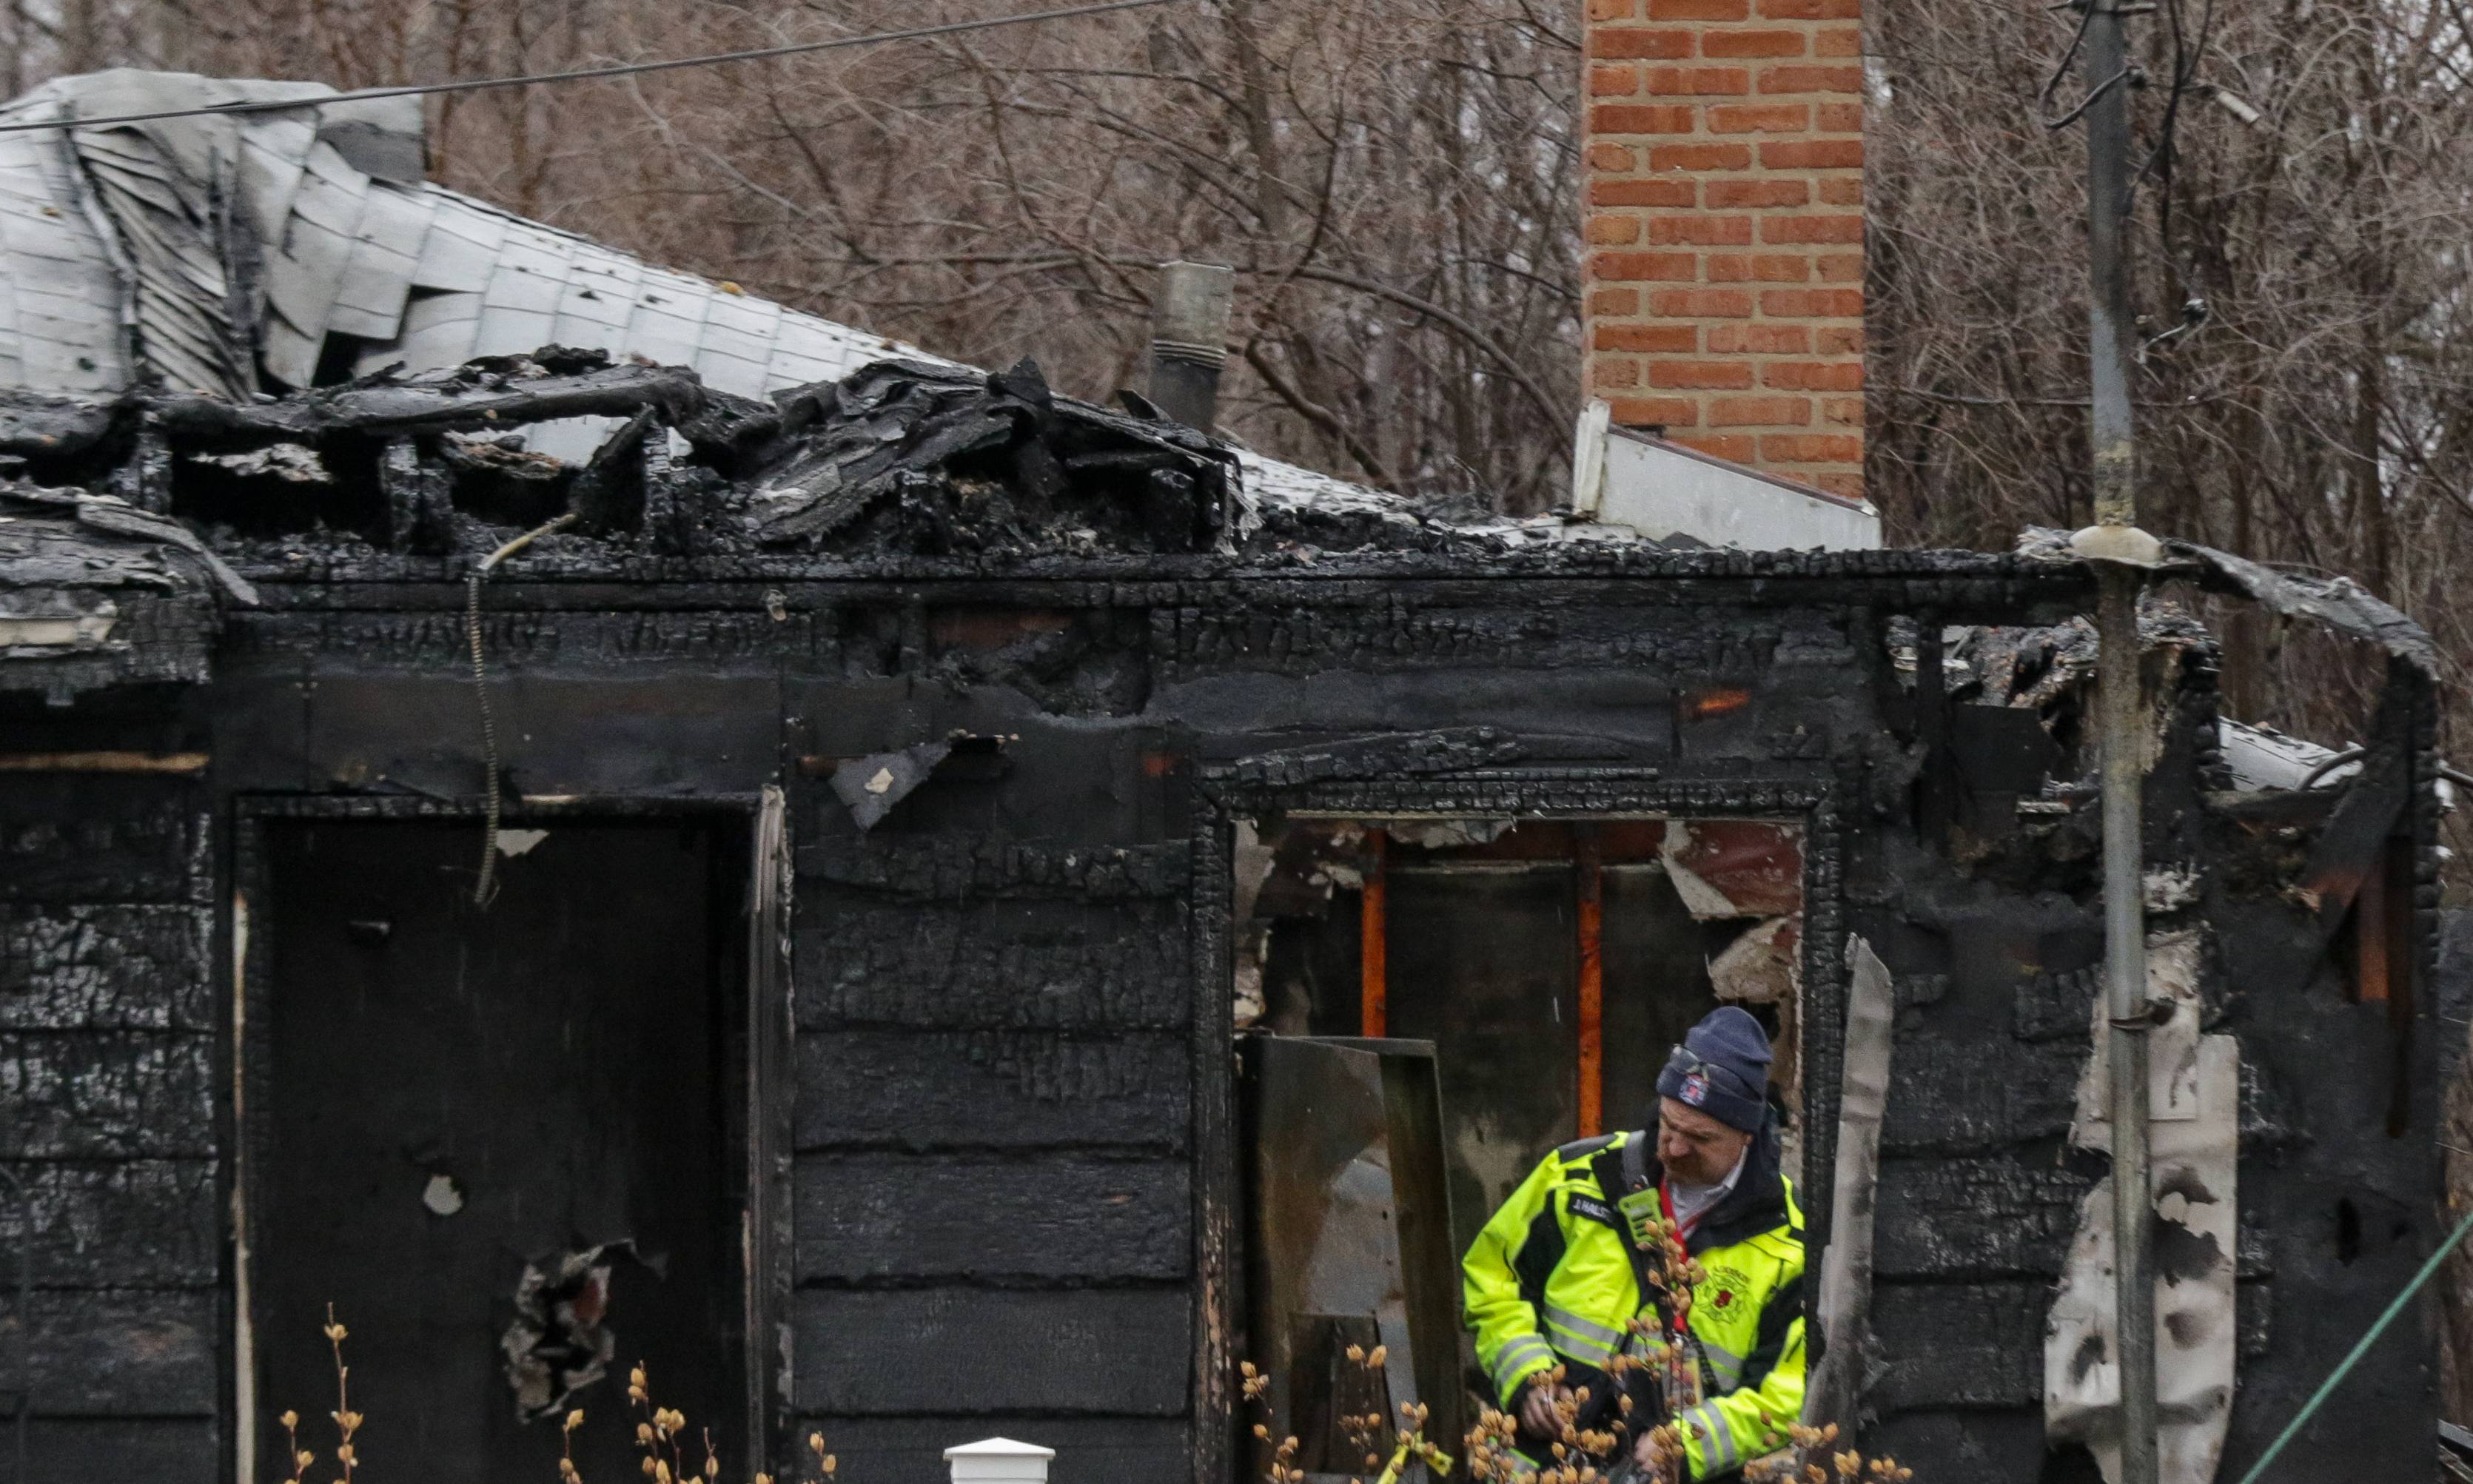 Investigators probing cause of Addison fire that killed two